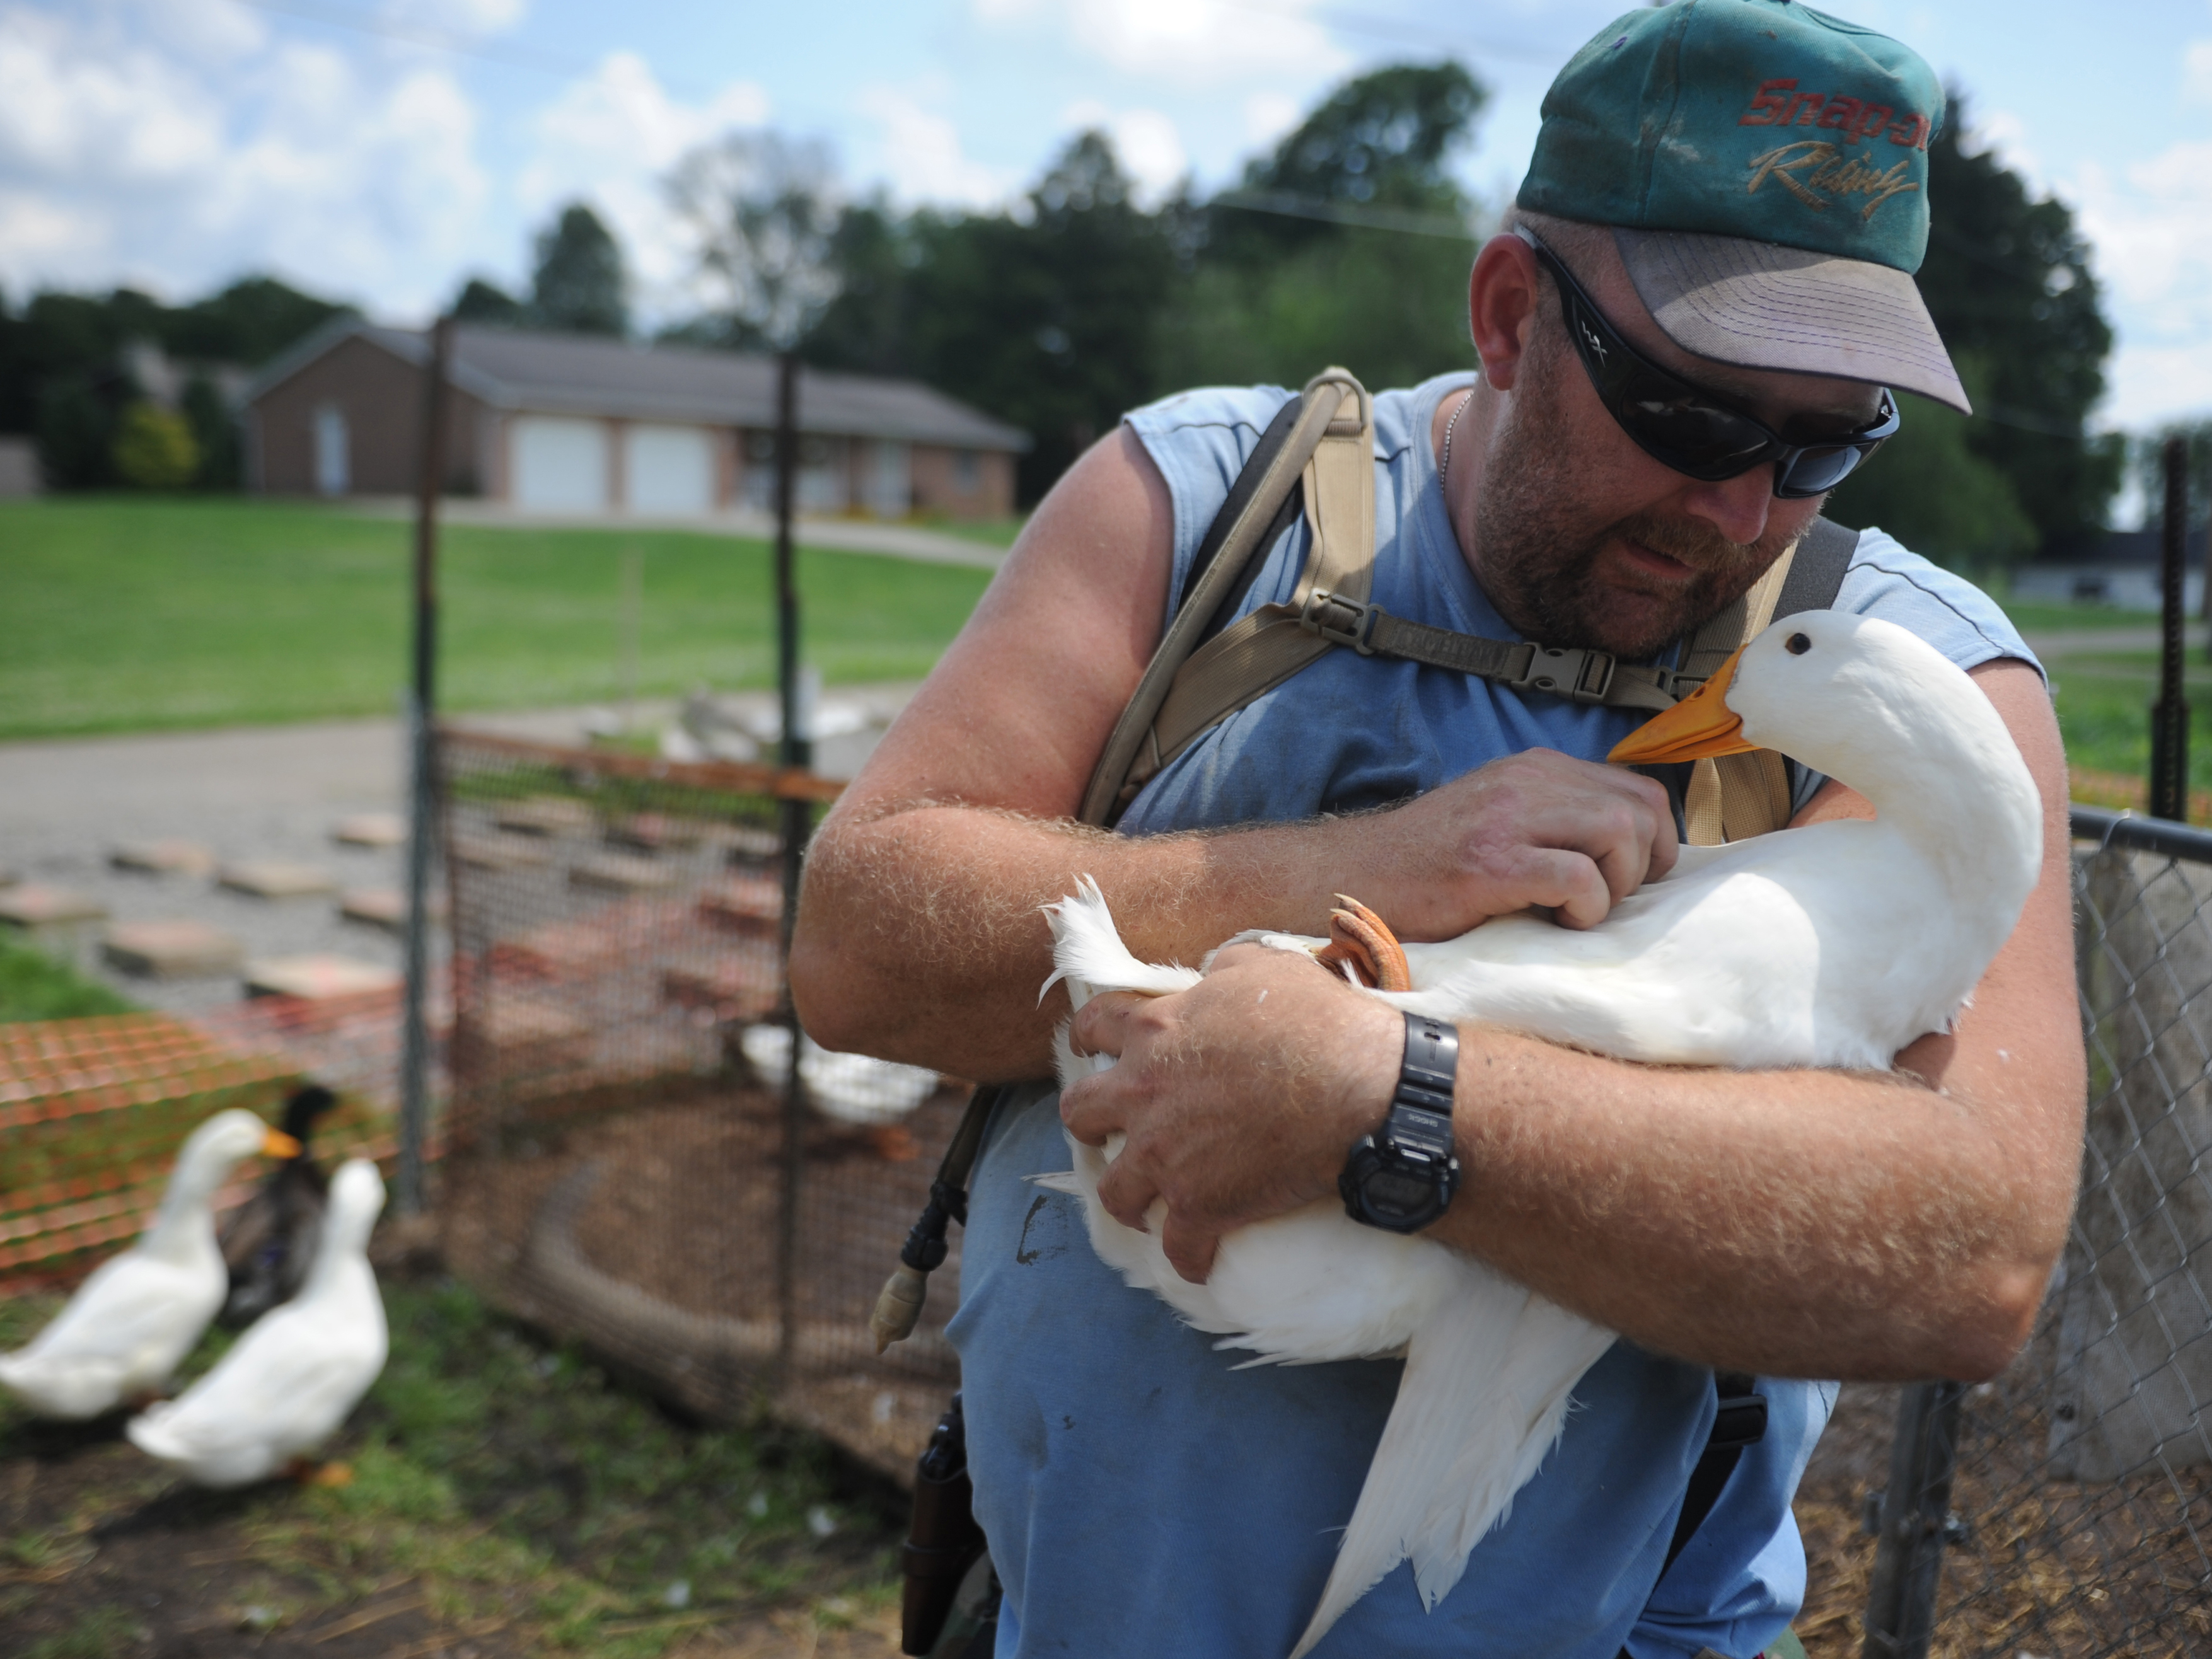 Iraq vet convicted for owning pet ducks to relieve PTSD - CBS News